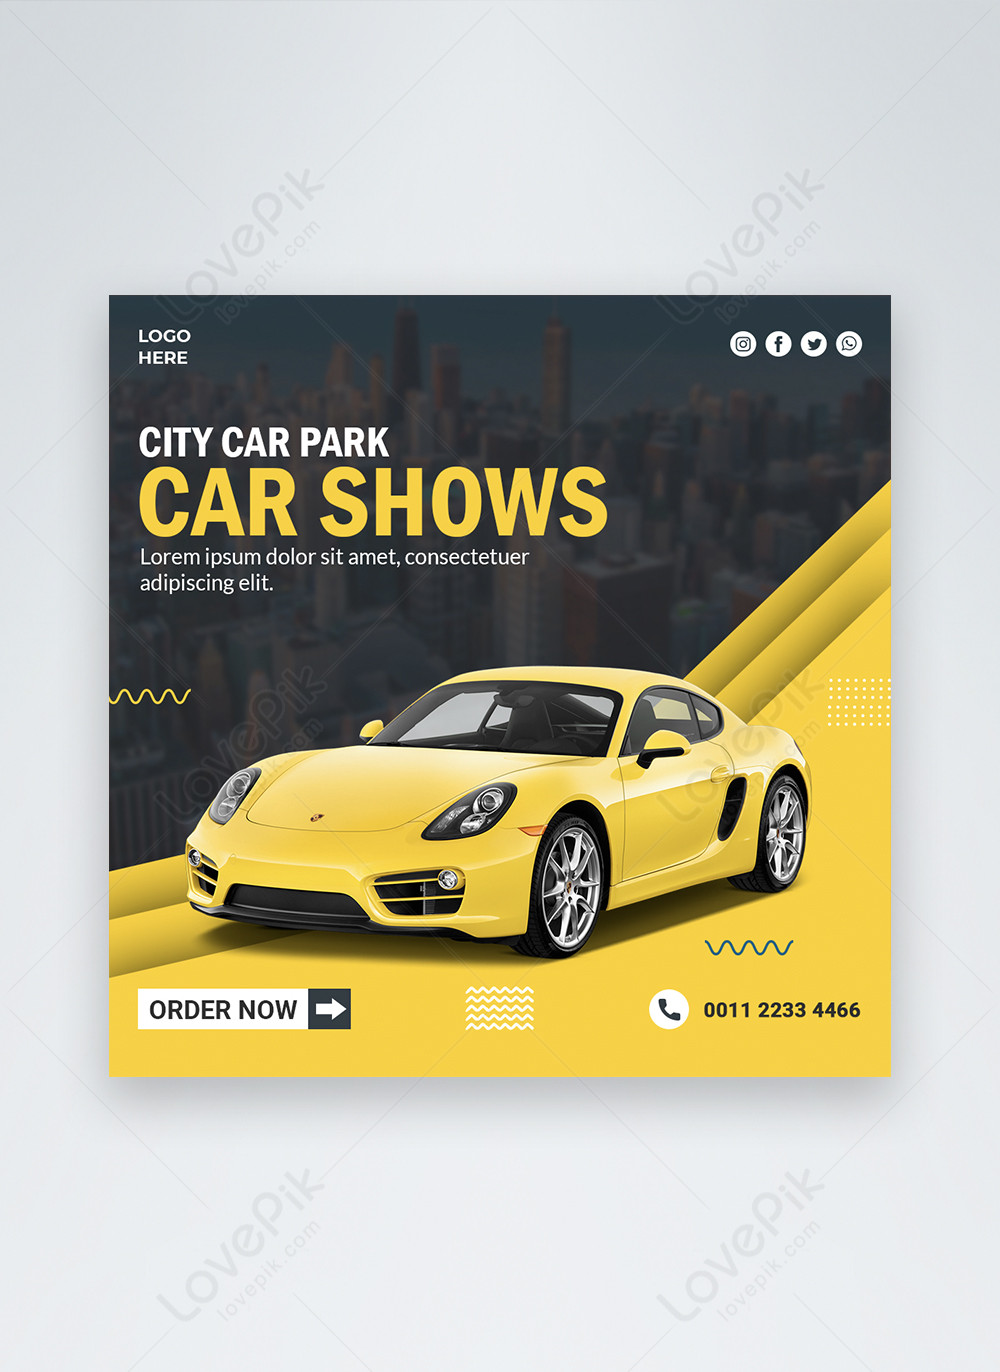 Blue Luxury Buiness Style Car Social Media Post Template Image Picture Free Download 450033356 Lovepik Com